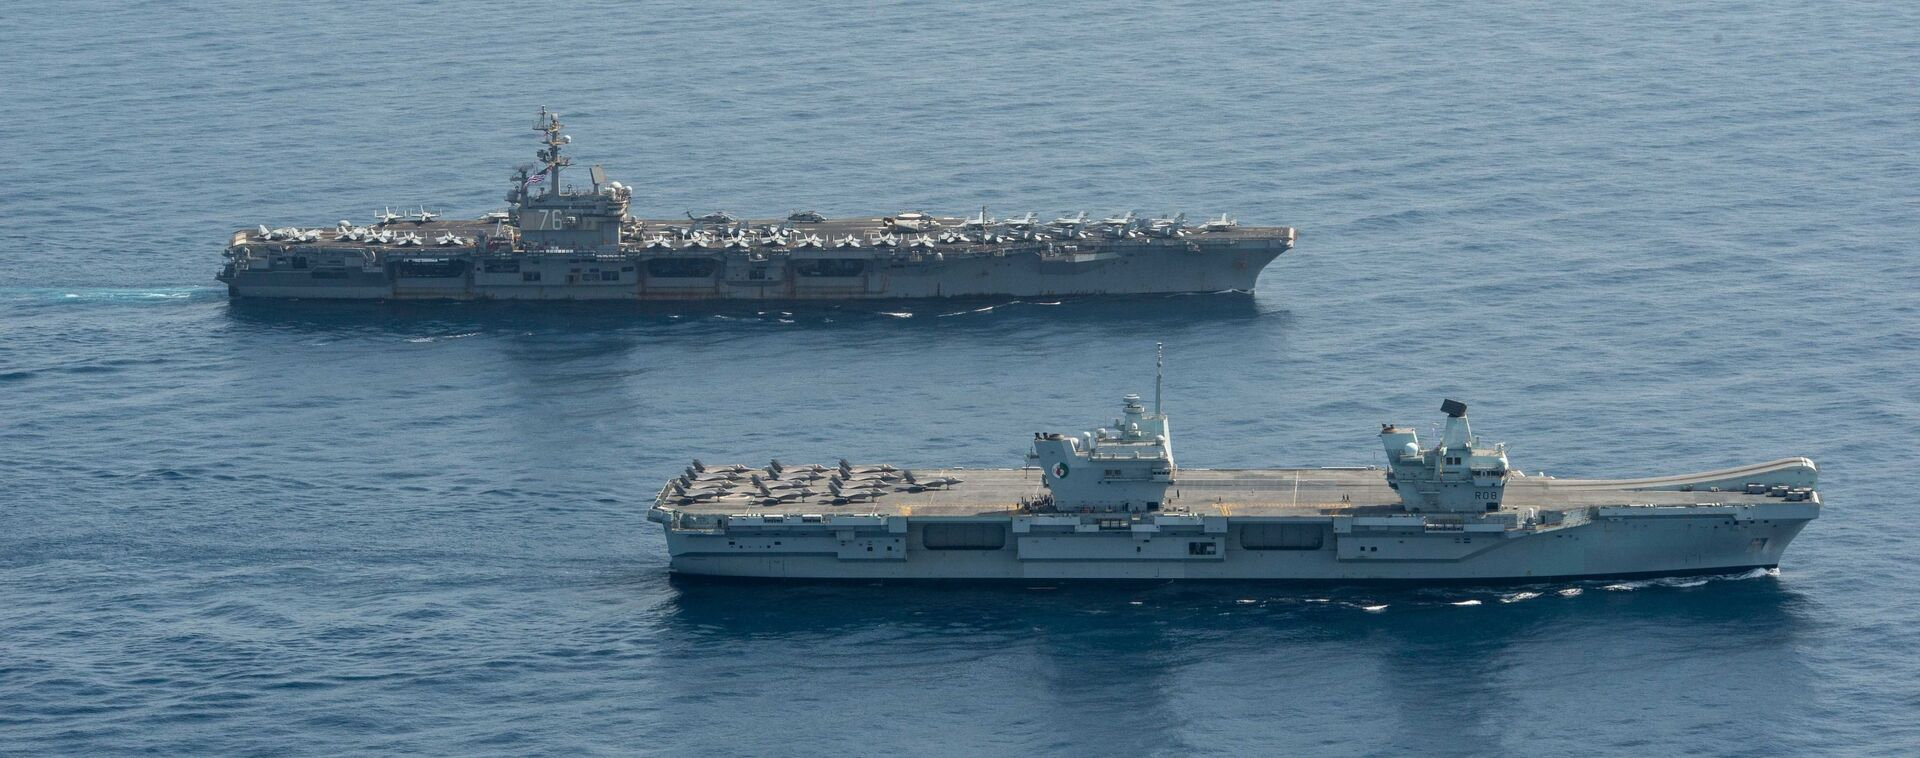 Royal Navy aircraft carrier HMS Queen Elizabeth ( R 08), front, and aircraft carrier USS Ronald Reagan (CVN 76) operate in formation in the Gulf of Aden, July 12. - Sputnik International, 1920, 07.09.2021